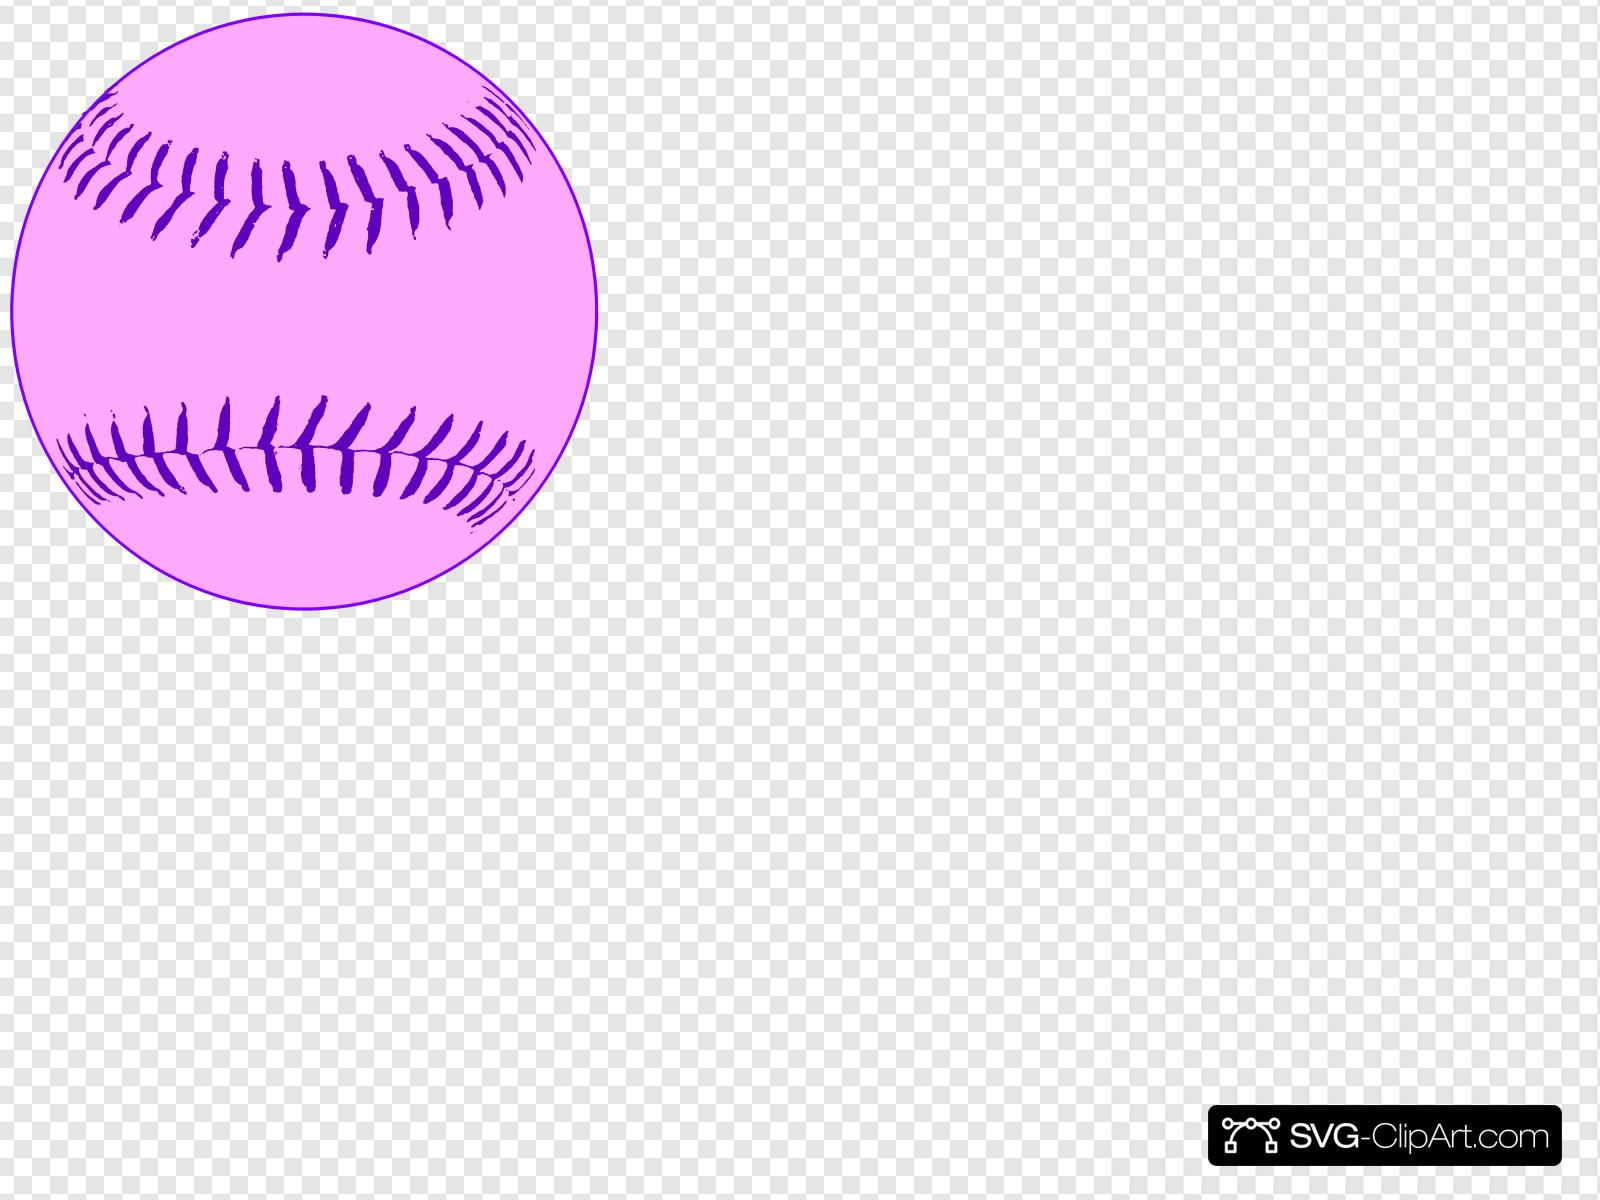 Pink Softball Clip art, Icon and SVG.